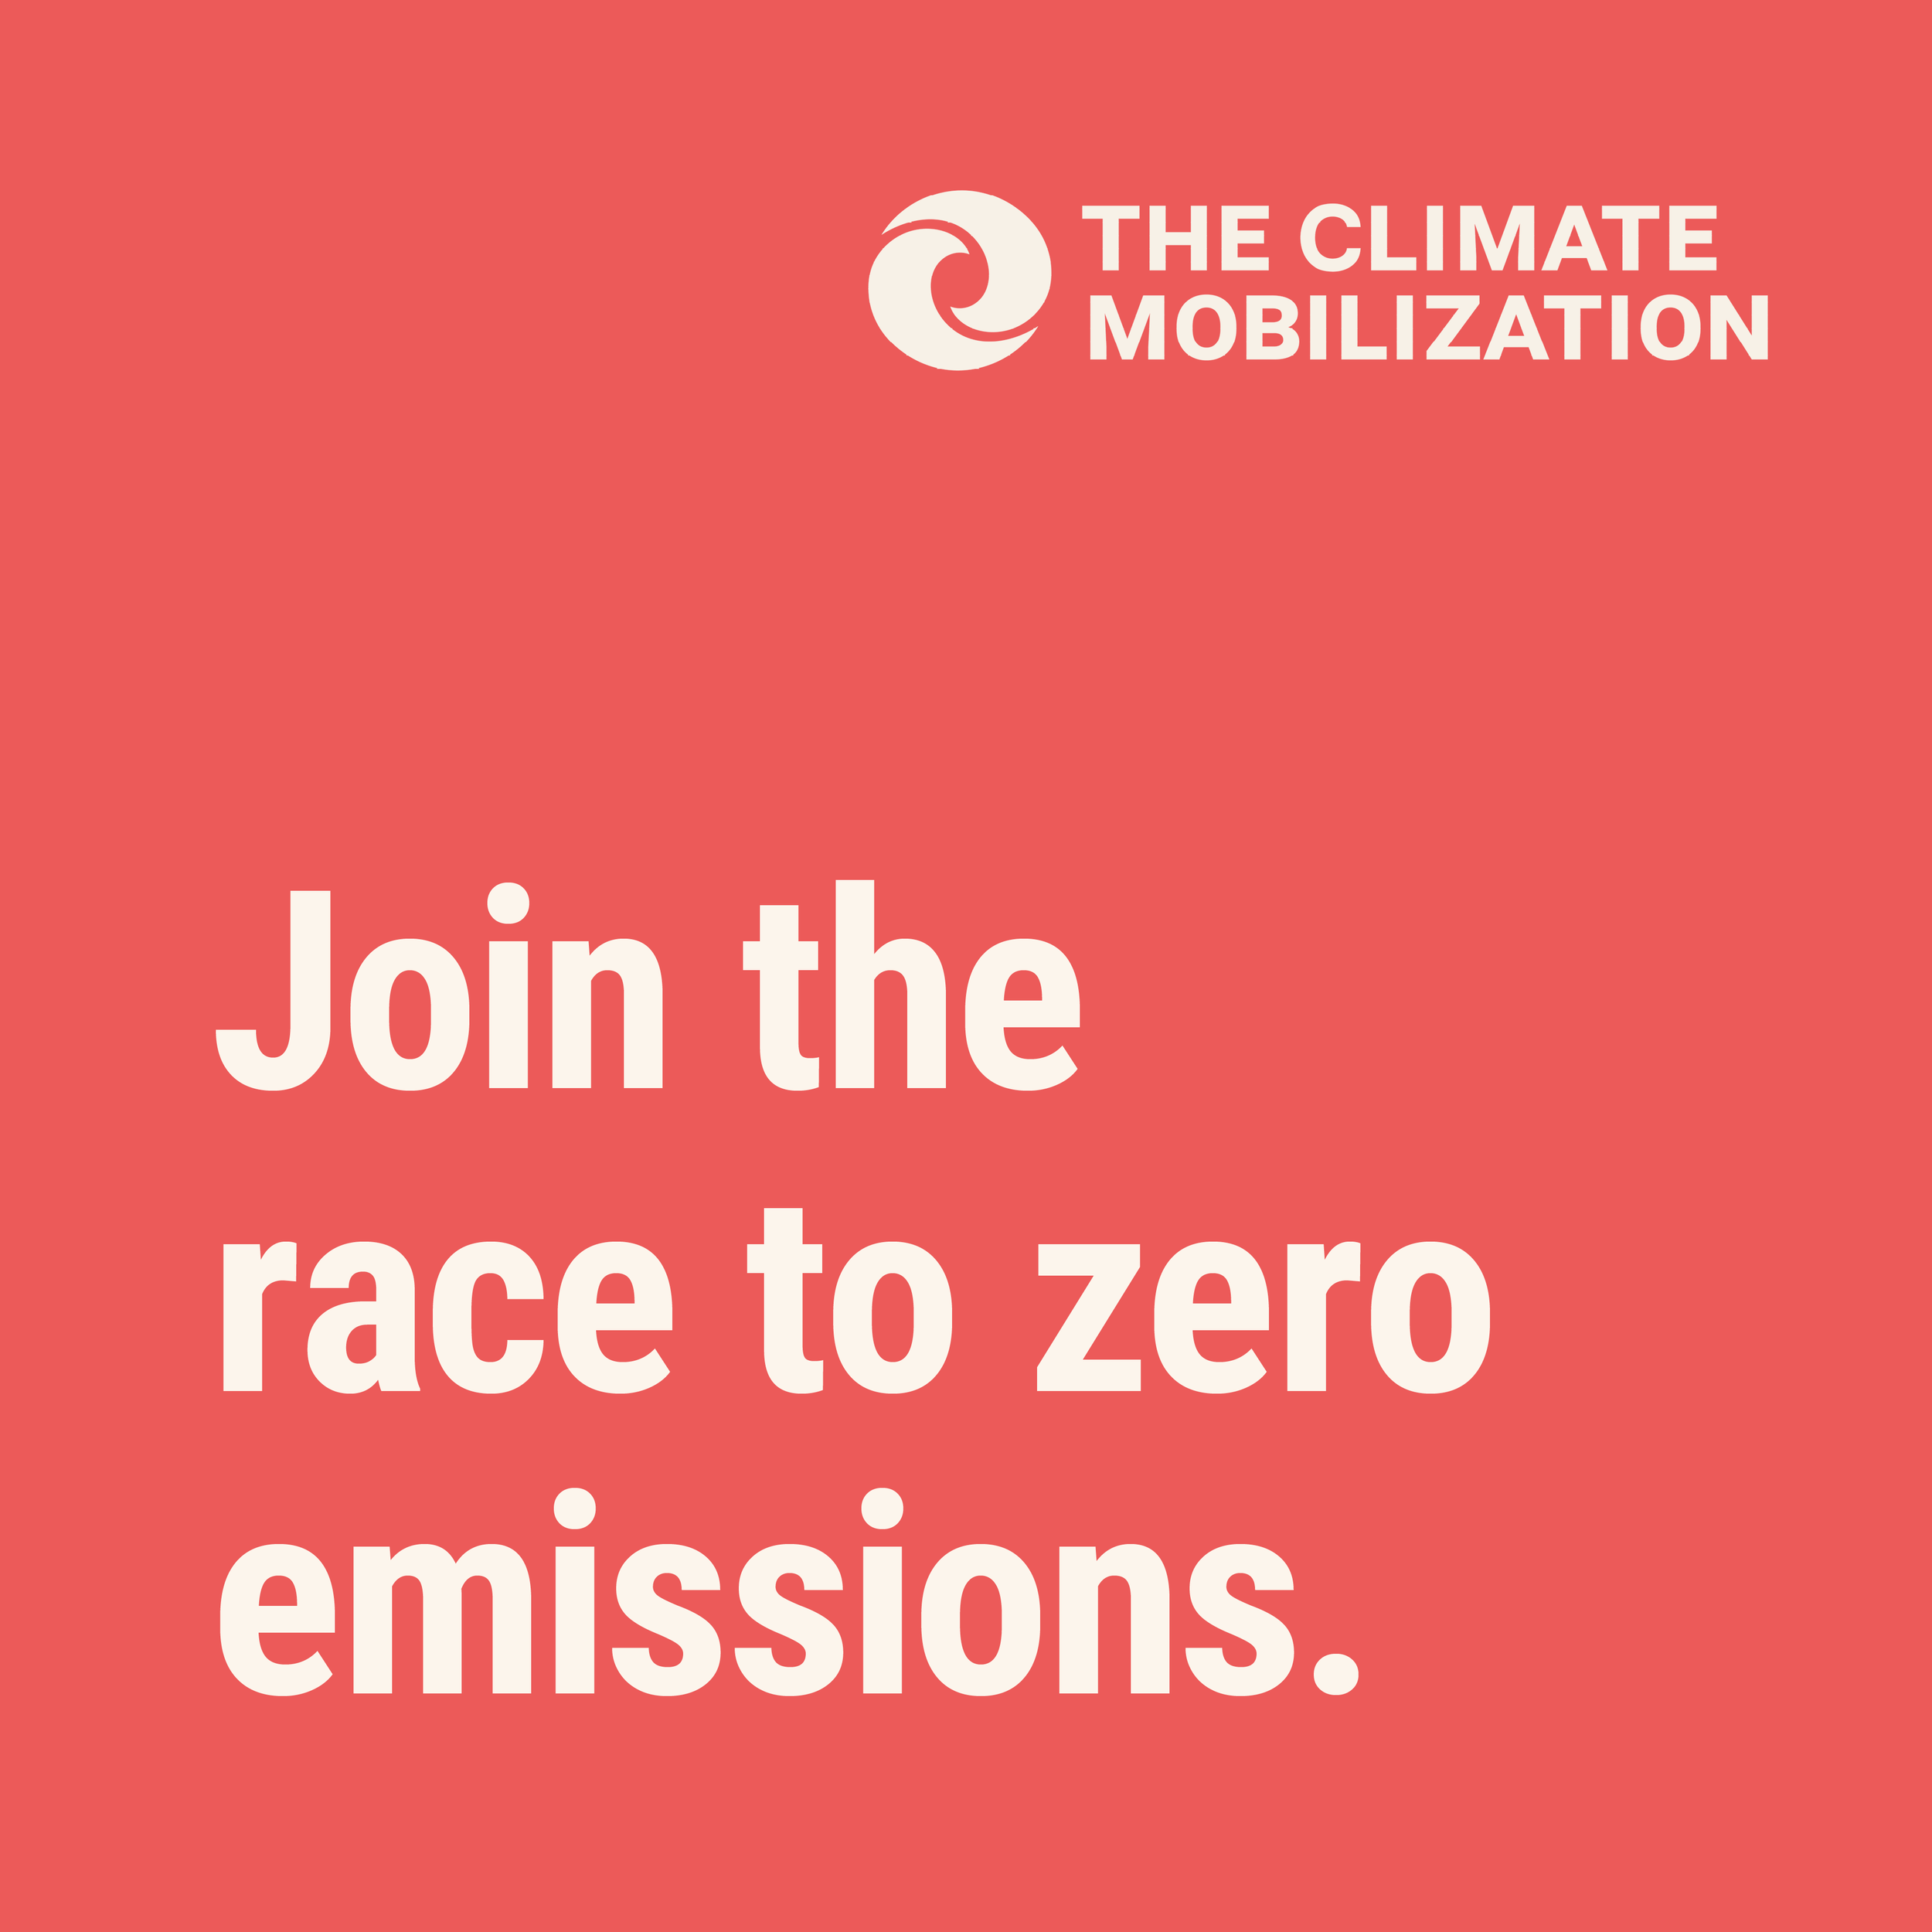 Join the race to zero emissions - The Climate Mobilization